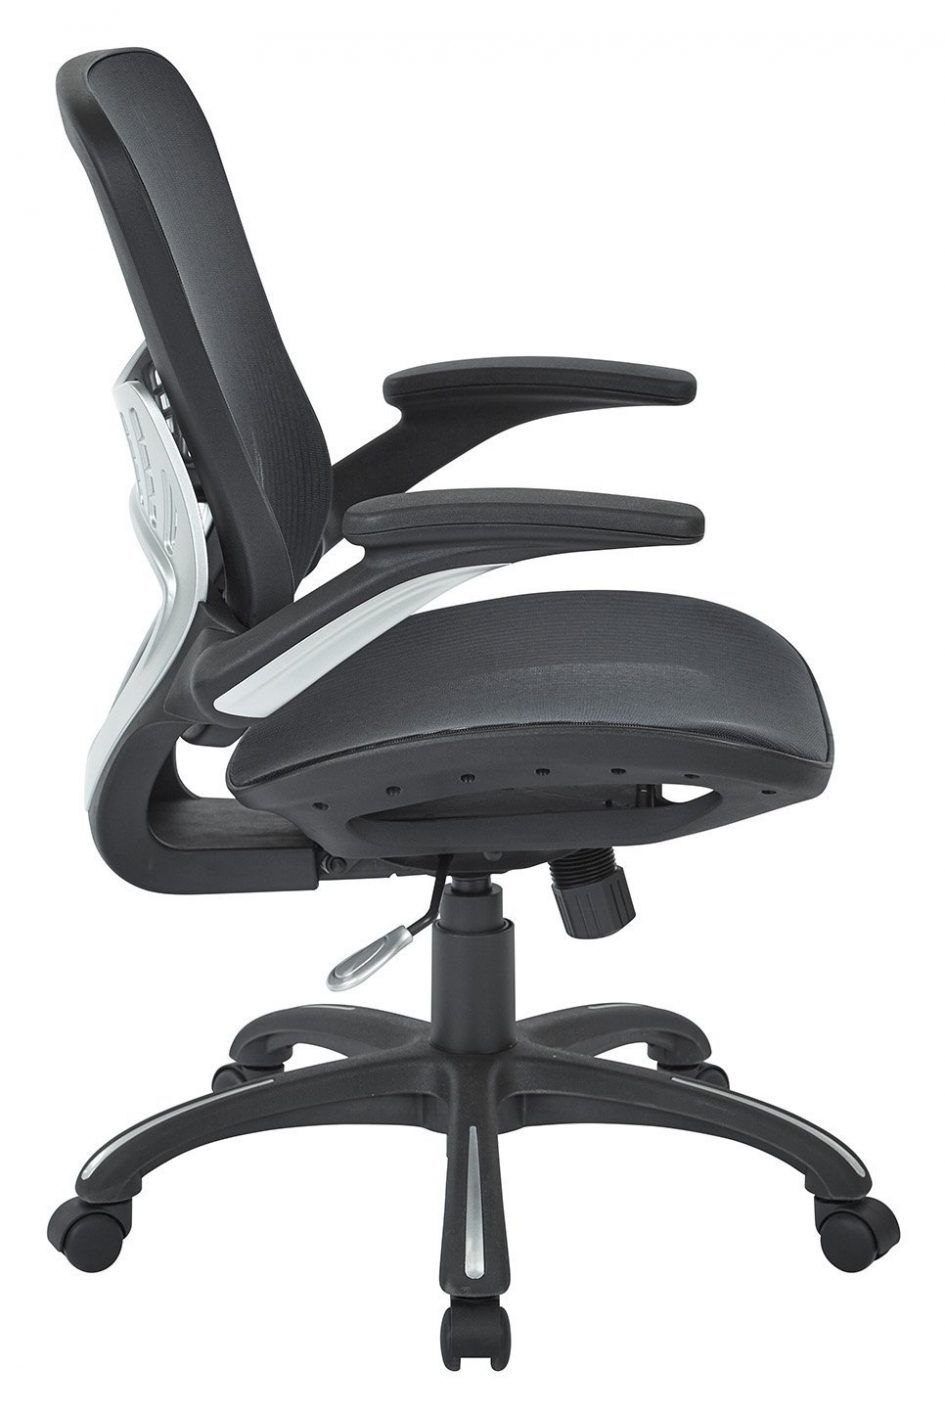 55+ Office Chairs Lumbar Support   Cool Storage Furniture Check More At  Http:/